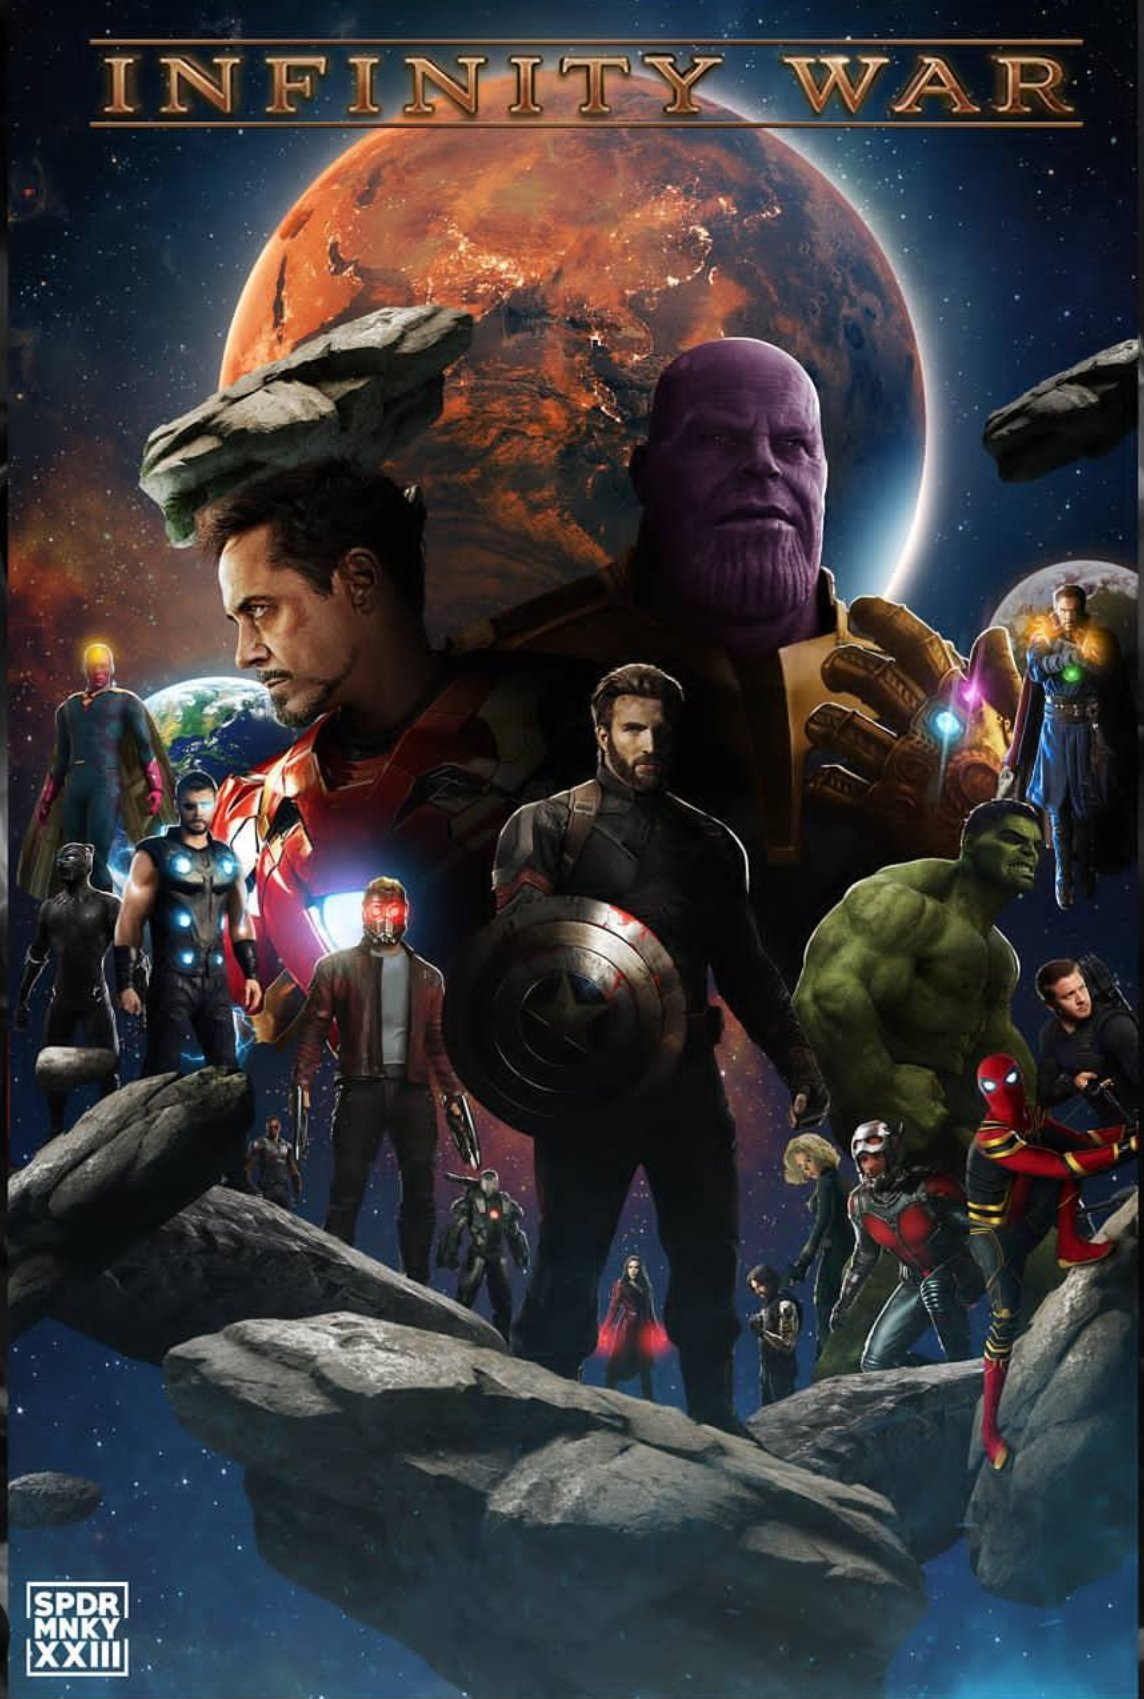 Alleged Footage From Avengers Infinity War Spells Bad